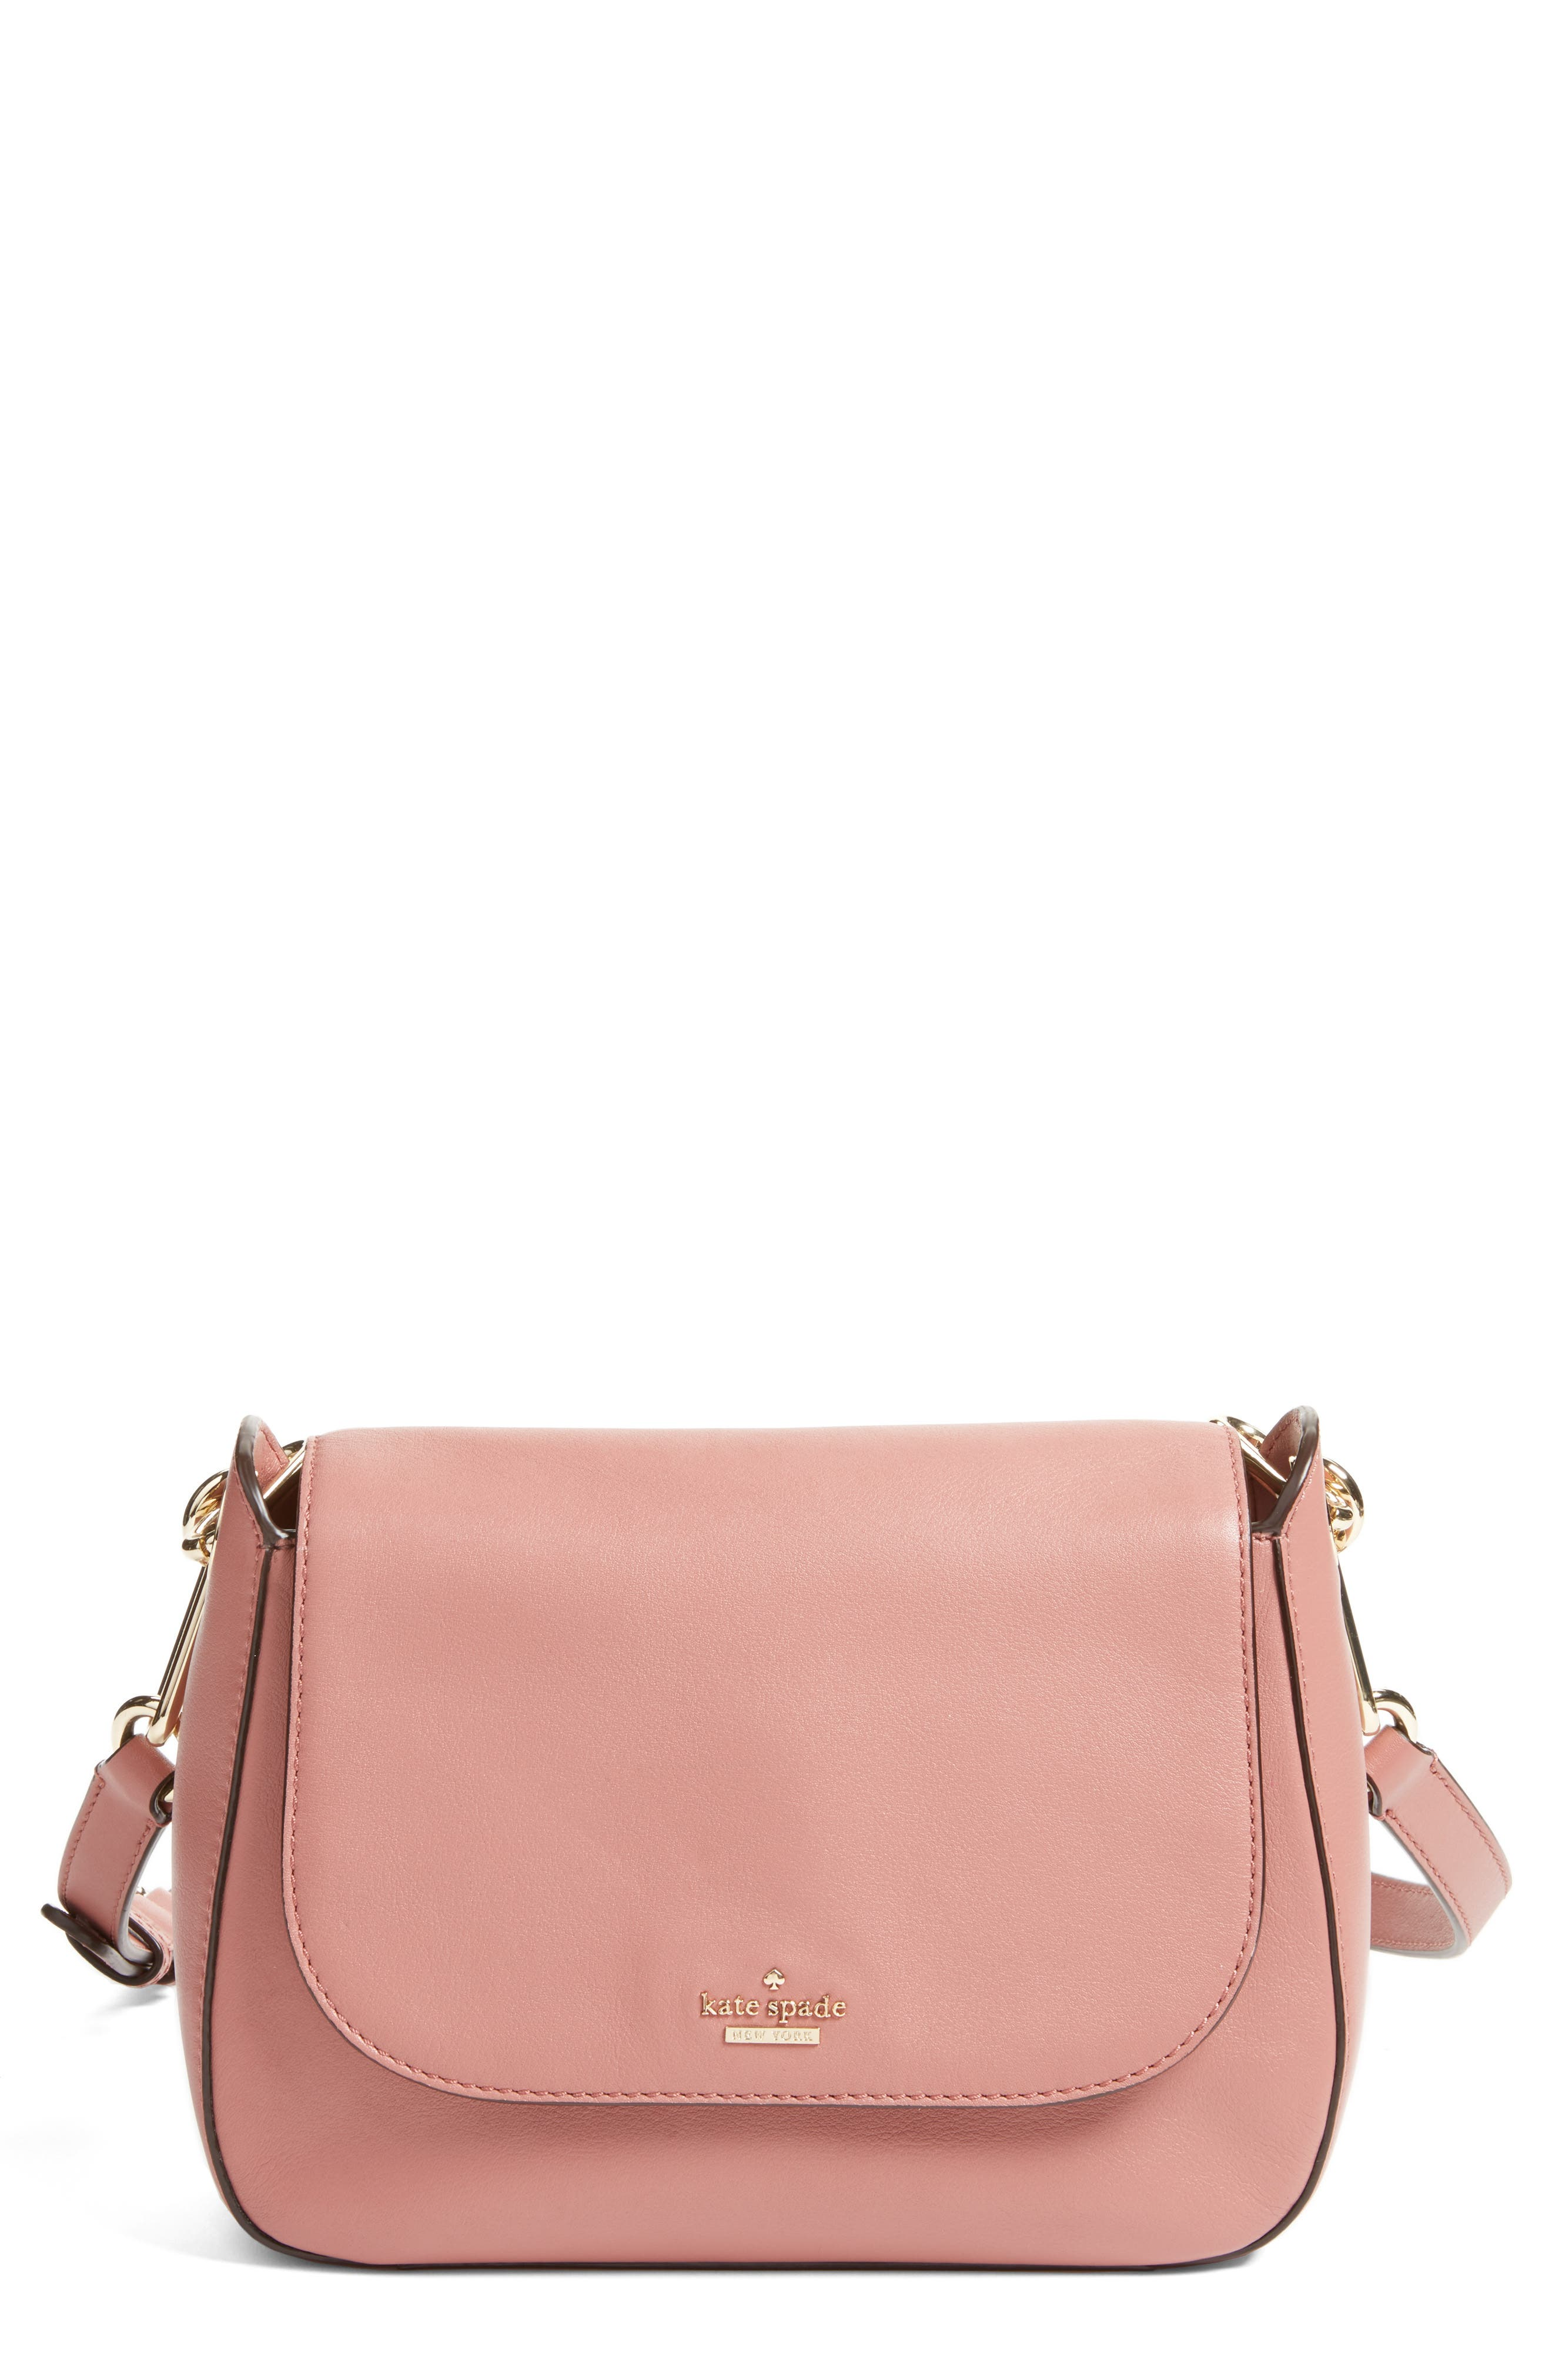 Alternate Image 1 Selected - kate spade new york robson lane kendra crossbody bag